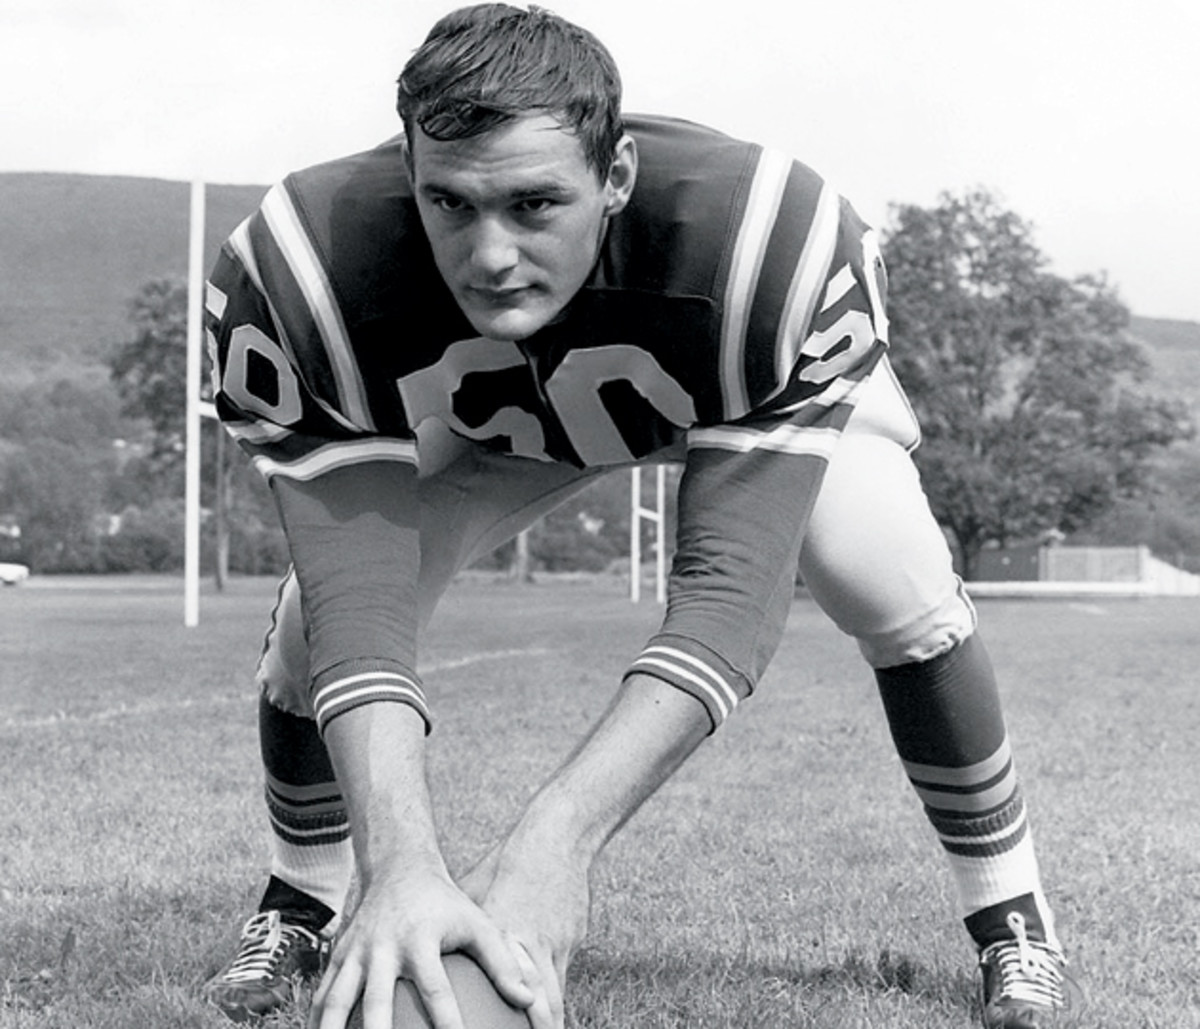 Reily became the starting center and inside linebacker in 1961 on the first day of sophomore practice.